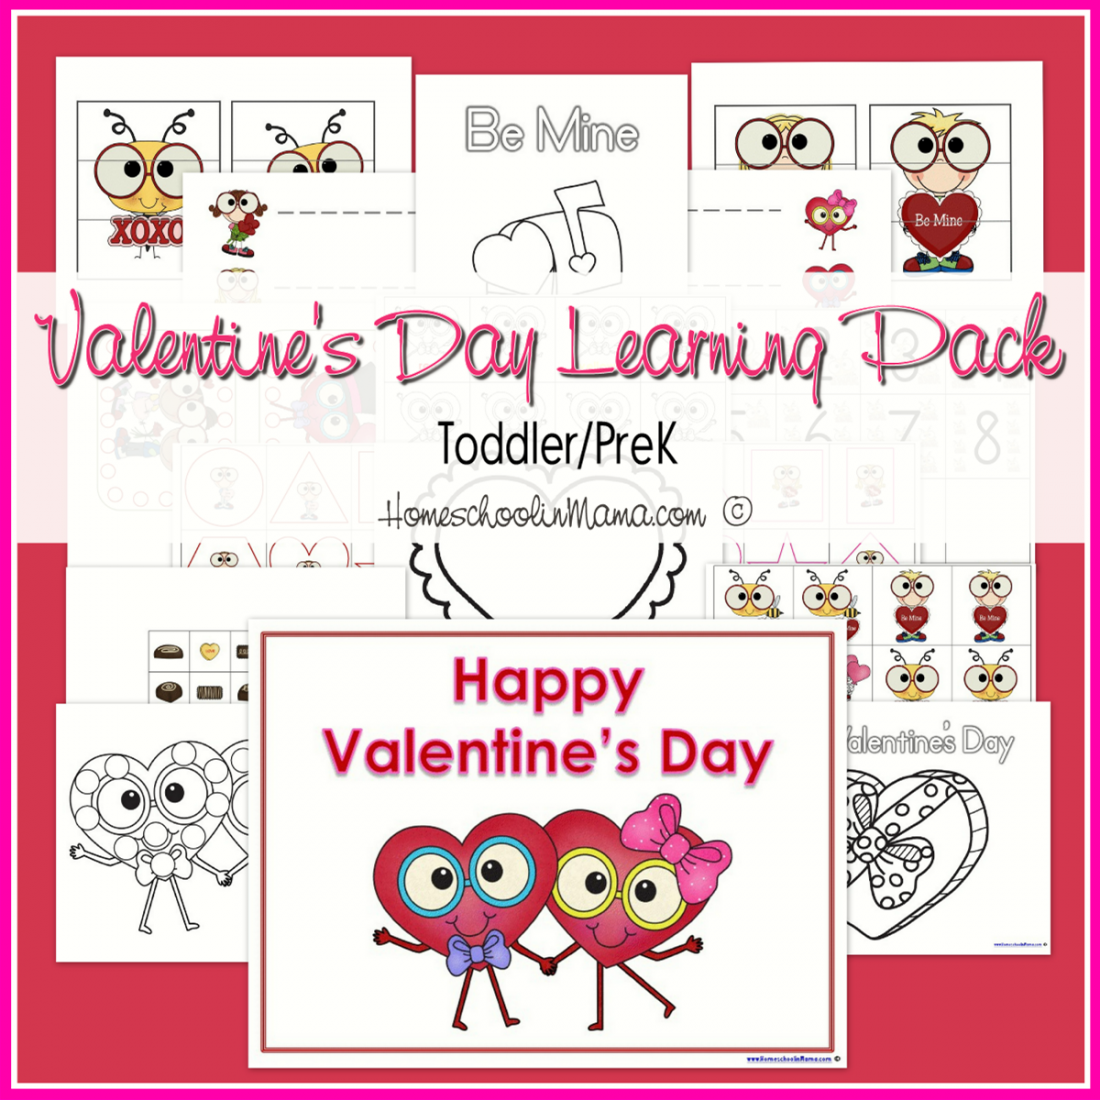 Valentines Day Toddler/PreK Learning Pack from HomeschoolinMama.com